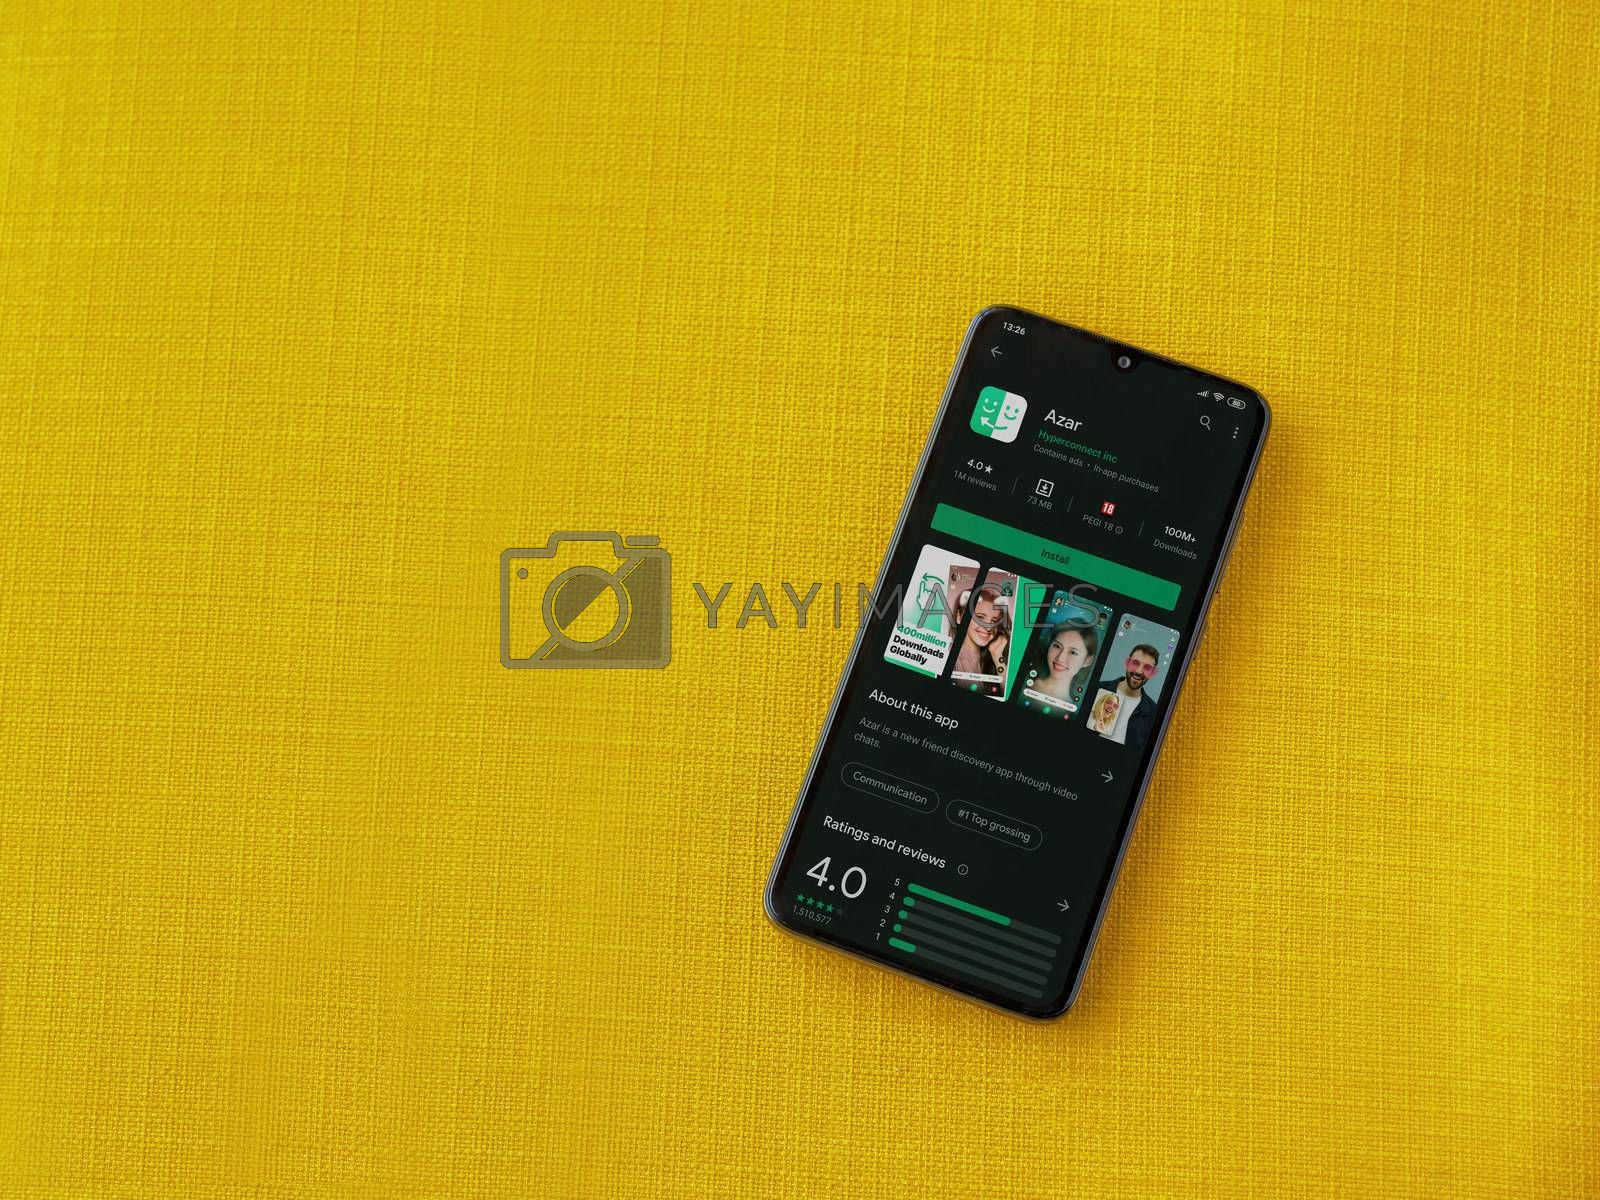 Lod, Israel - July 8, 2020: Azar app play store page on the display of a black mobile smartphone on a yellow fabric background. Top view flat lay with copy space.